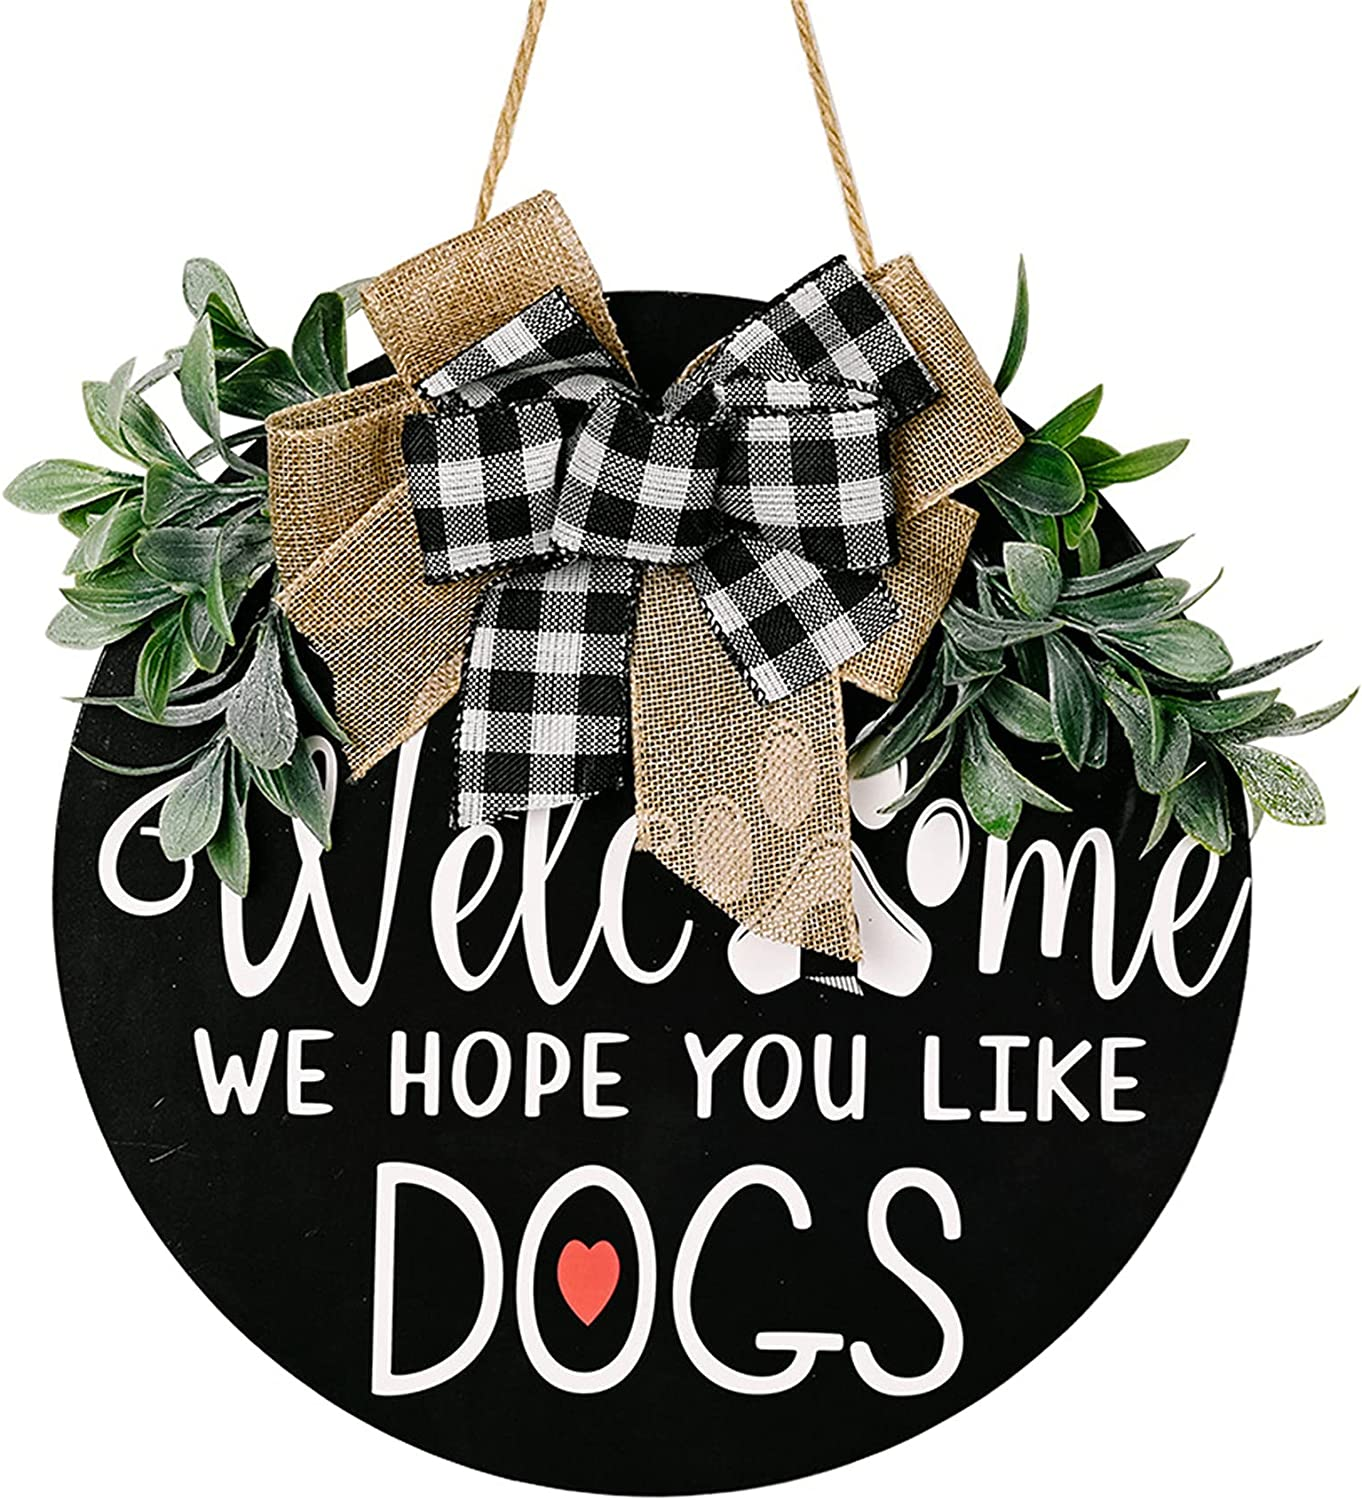 Welcome Wreath Sign for Farmhouse Front Porch Decor, Welcome Me -We Hope You Like Dogs Farmhouse Door for Home Decoration Outdoor Indoor, Gift for Christmas Housewarming Holiday Home Decoration(Black)